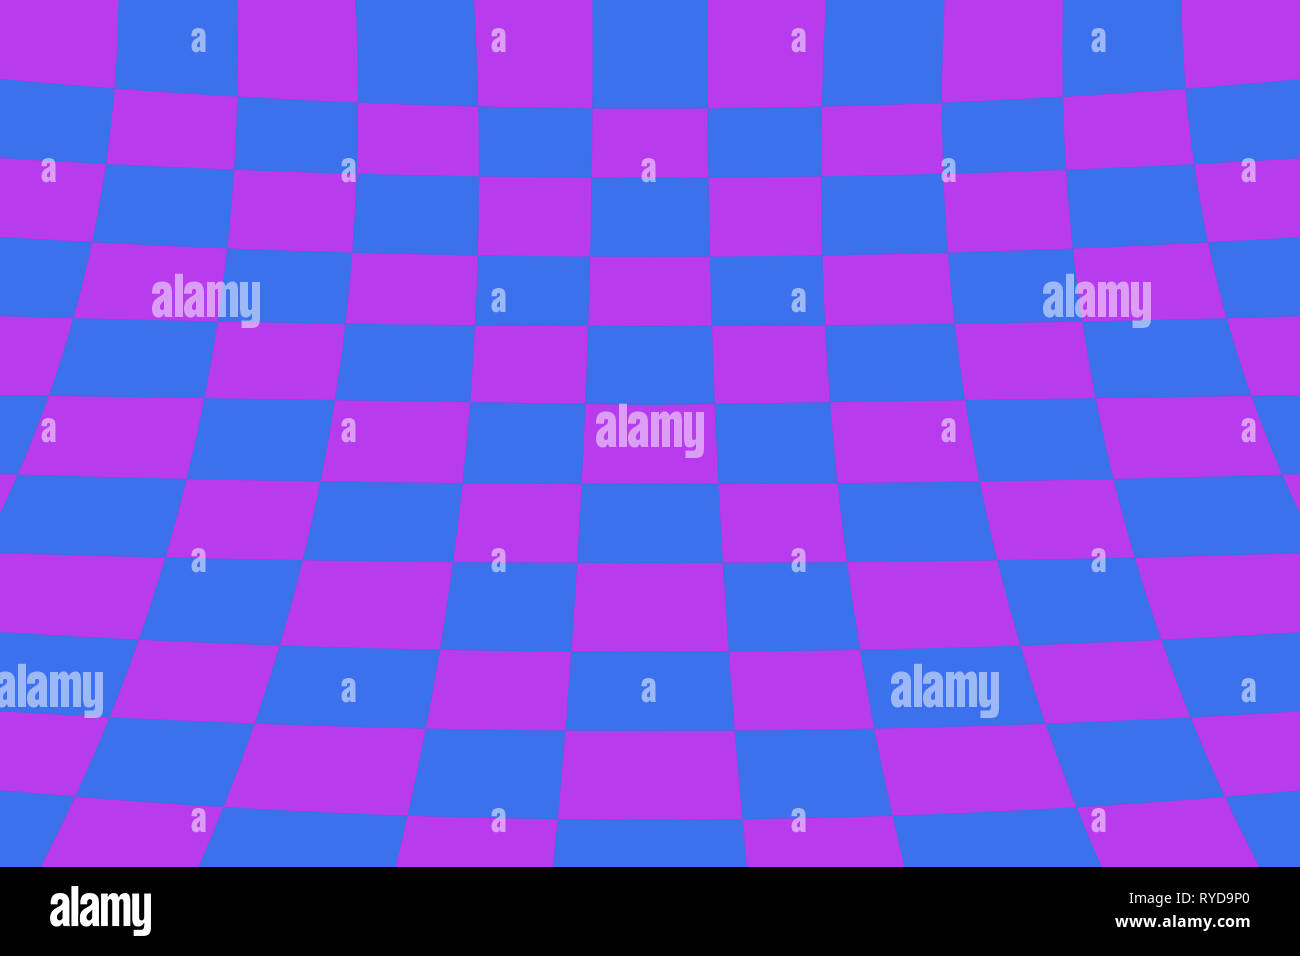 Warped perspective coloured checker board effect grid illustration purple and blue - Stock Image